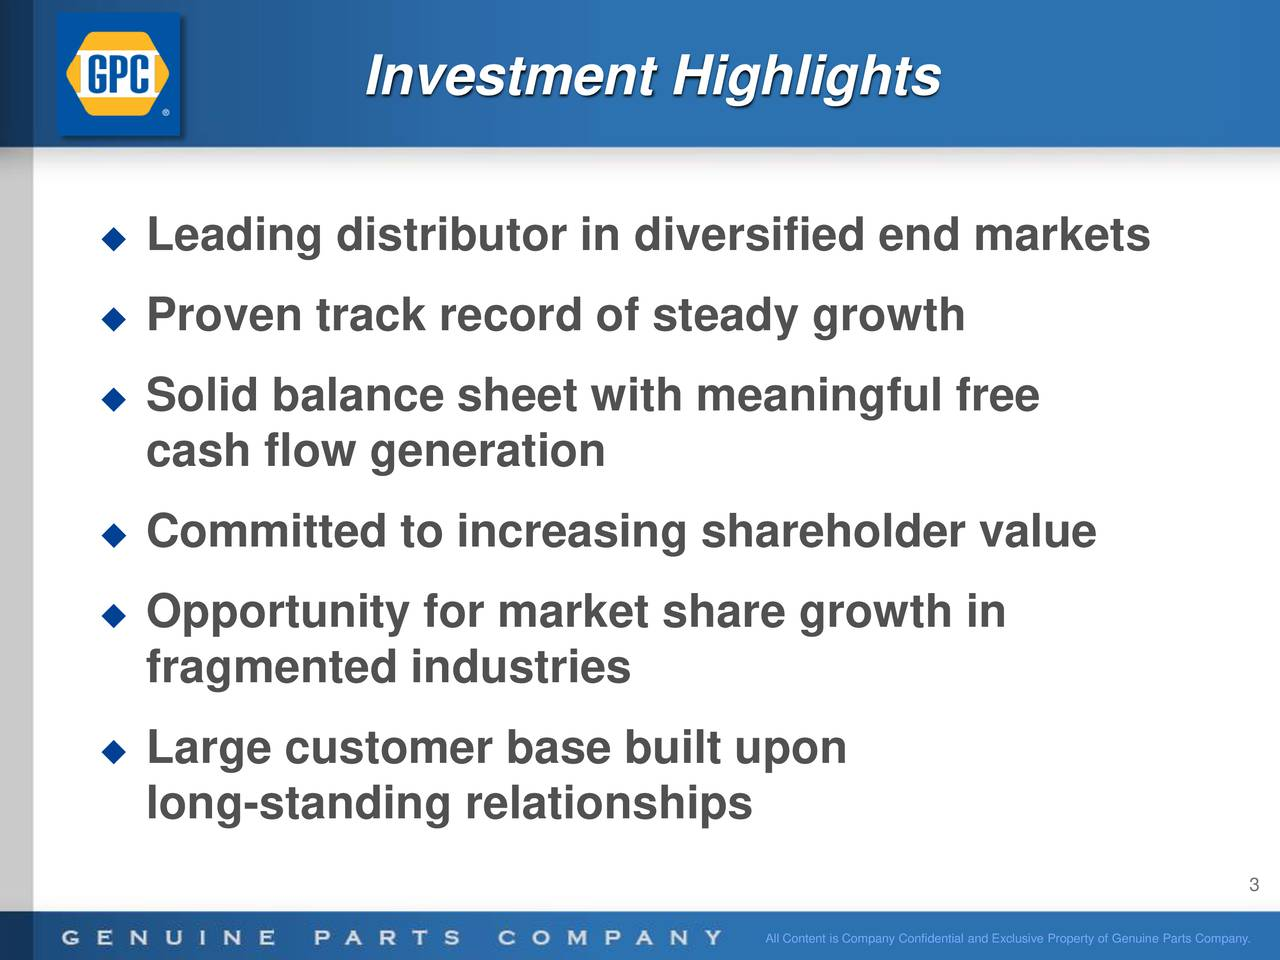 Leading distributor in diversified end markets Proven track record of steady growth Solid balance sheet with meaningful free cash flow generation Committed to increasing shareholder value Opportunity for market share growth in fragmented industries Large customer base built upon long-standing relationships 3